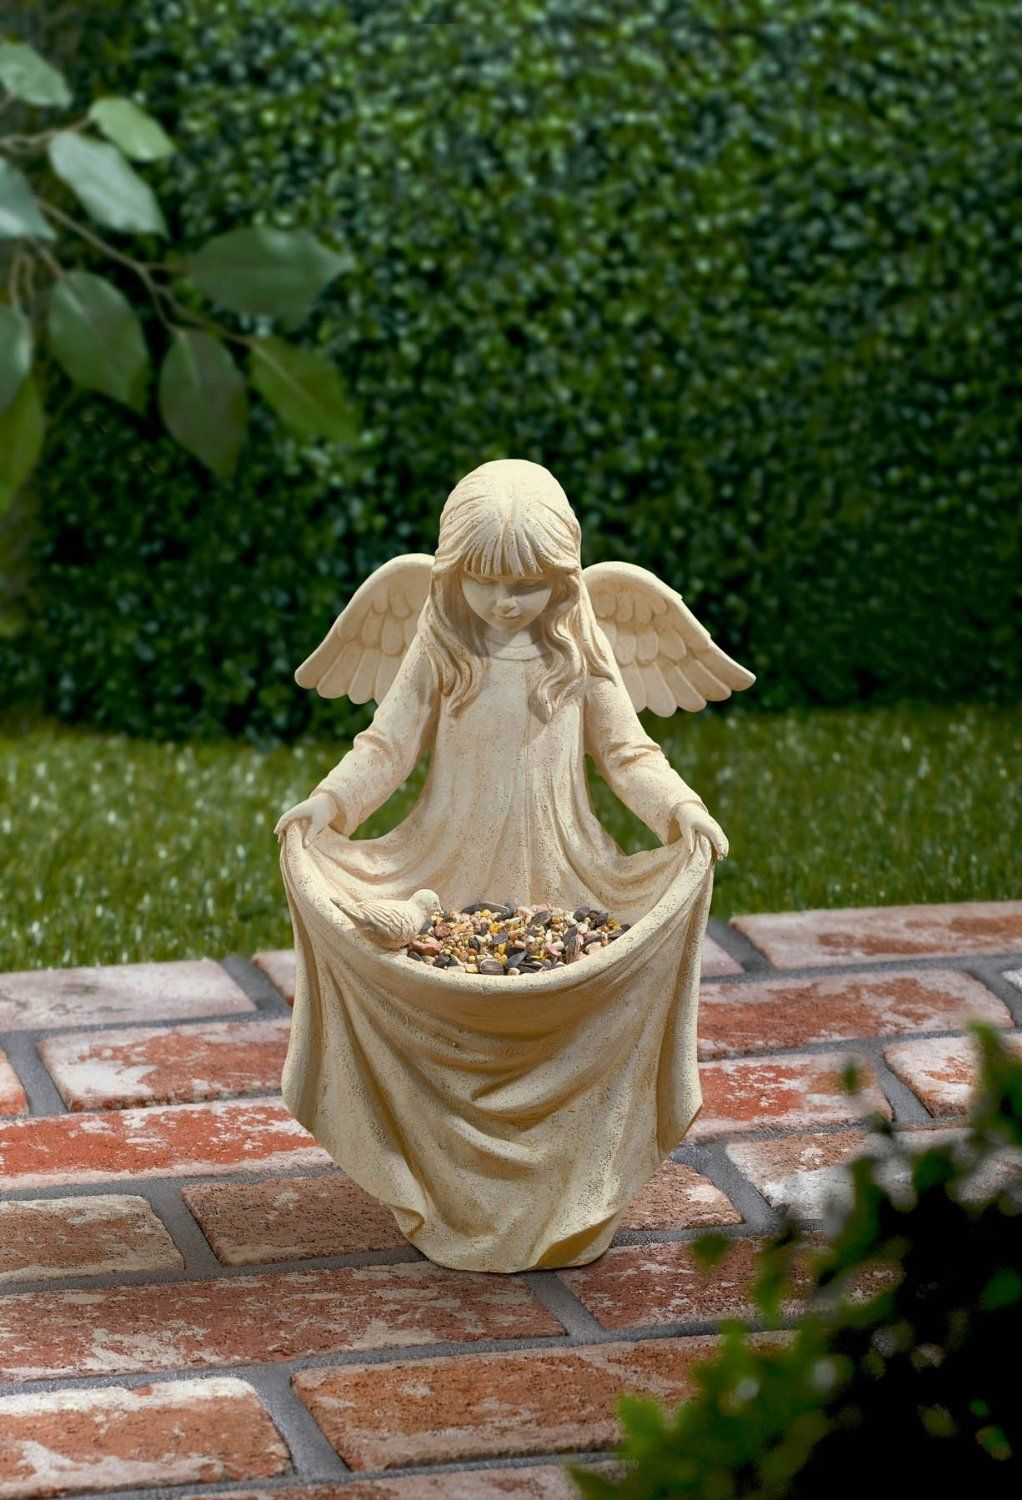 Such An Adorable Little Angel Statue Holding Her Skirt To